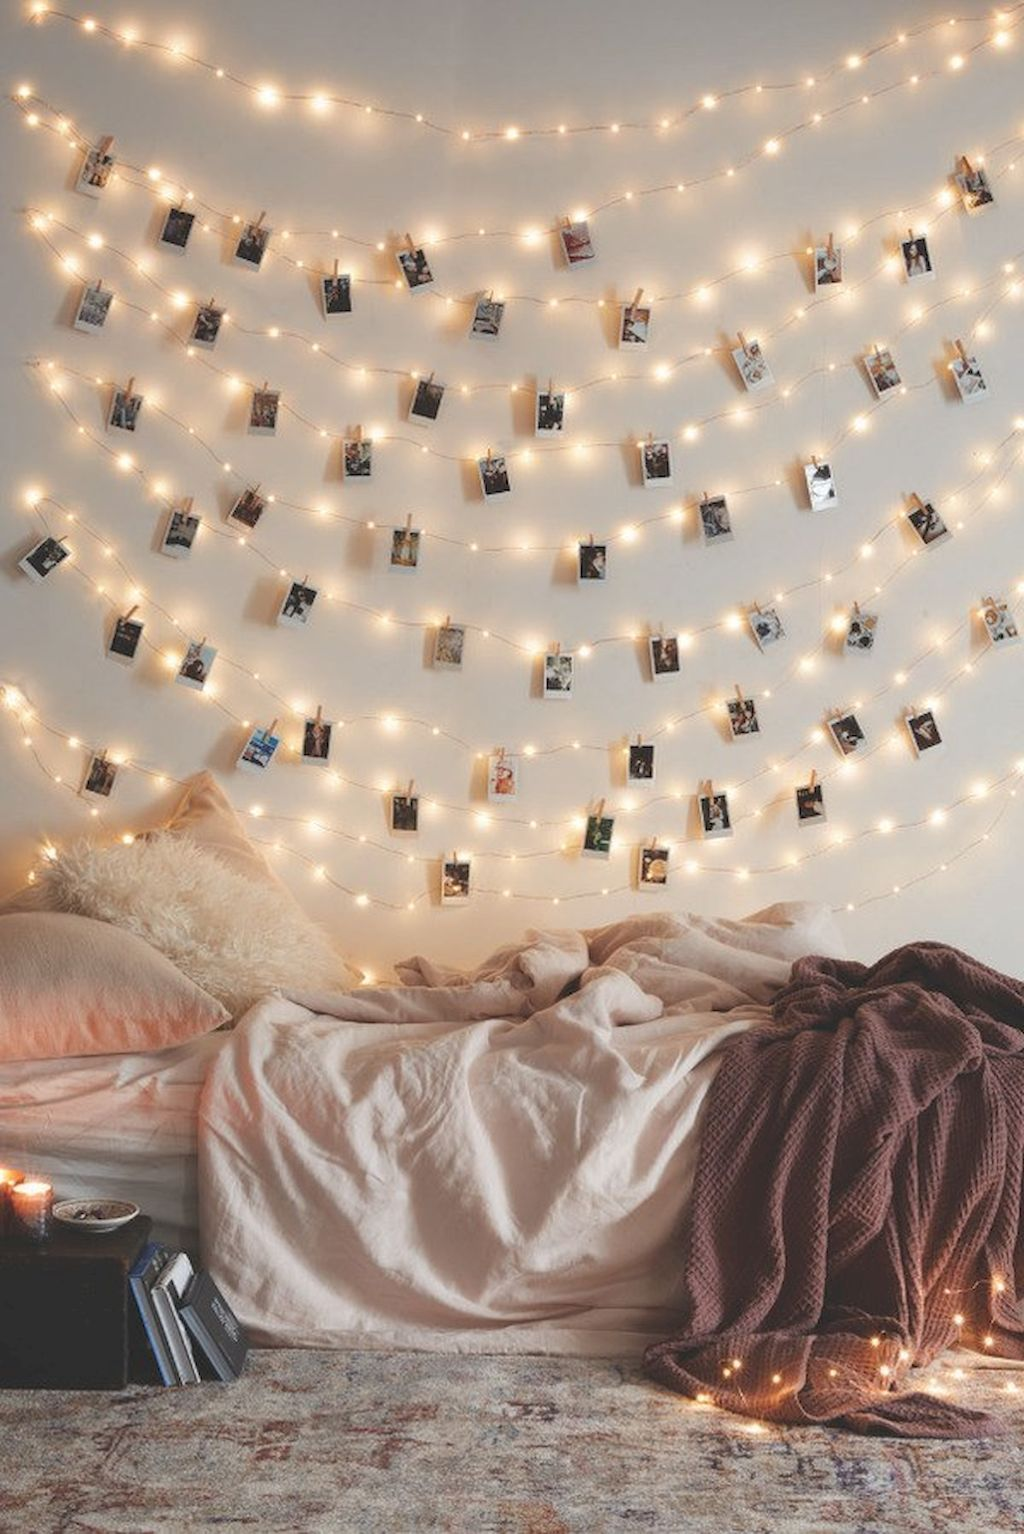 66 Cute Diy Hipster Bedroom Decorations Ideas, Schlafzimmer Entwurf